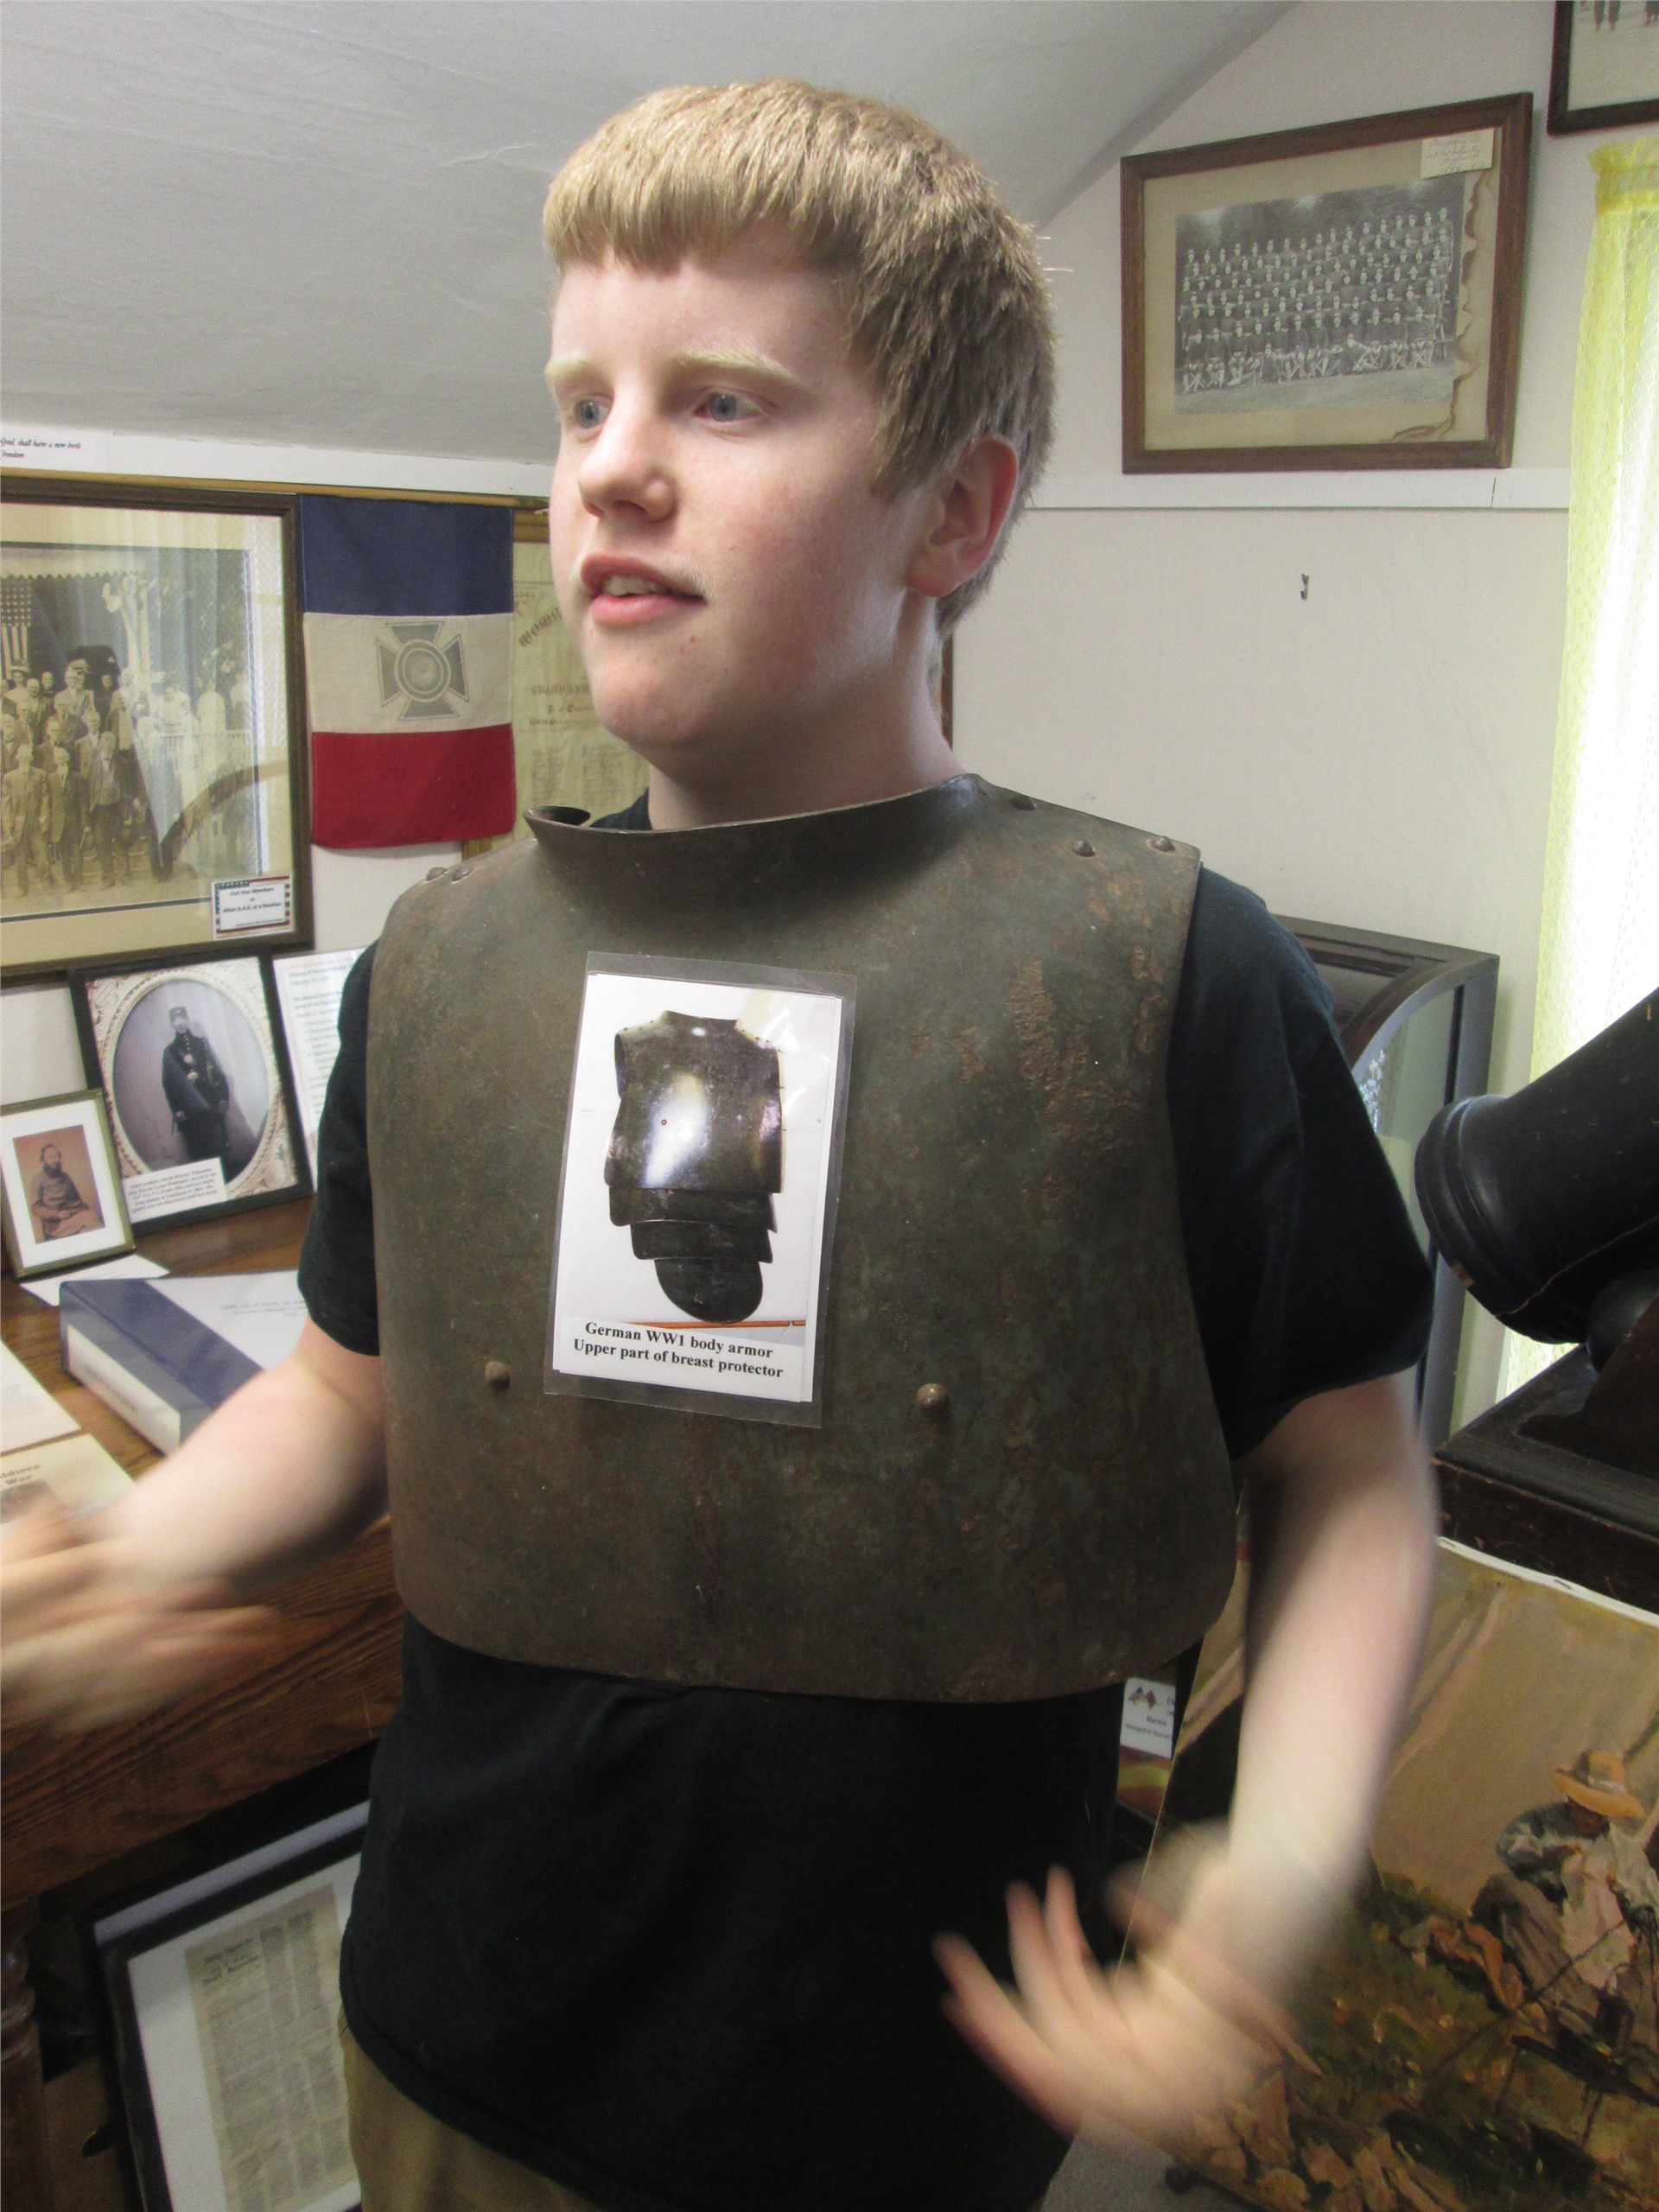 World War I exhibit: Exhibit planner wearing artillery armor.